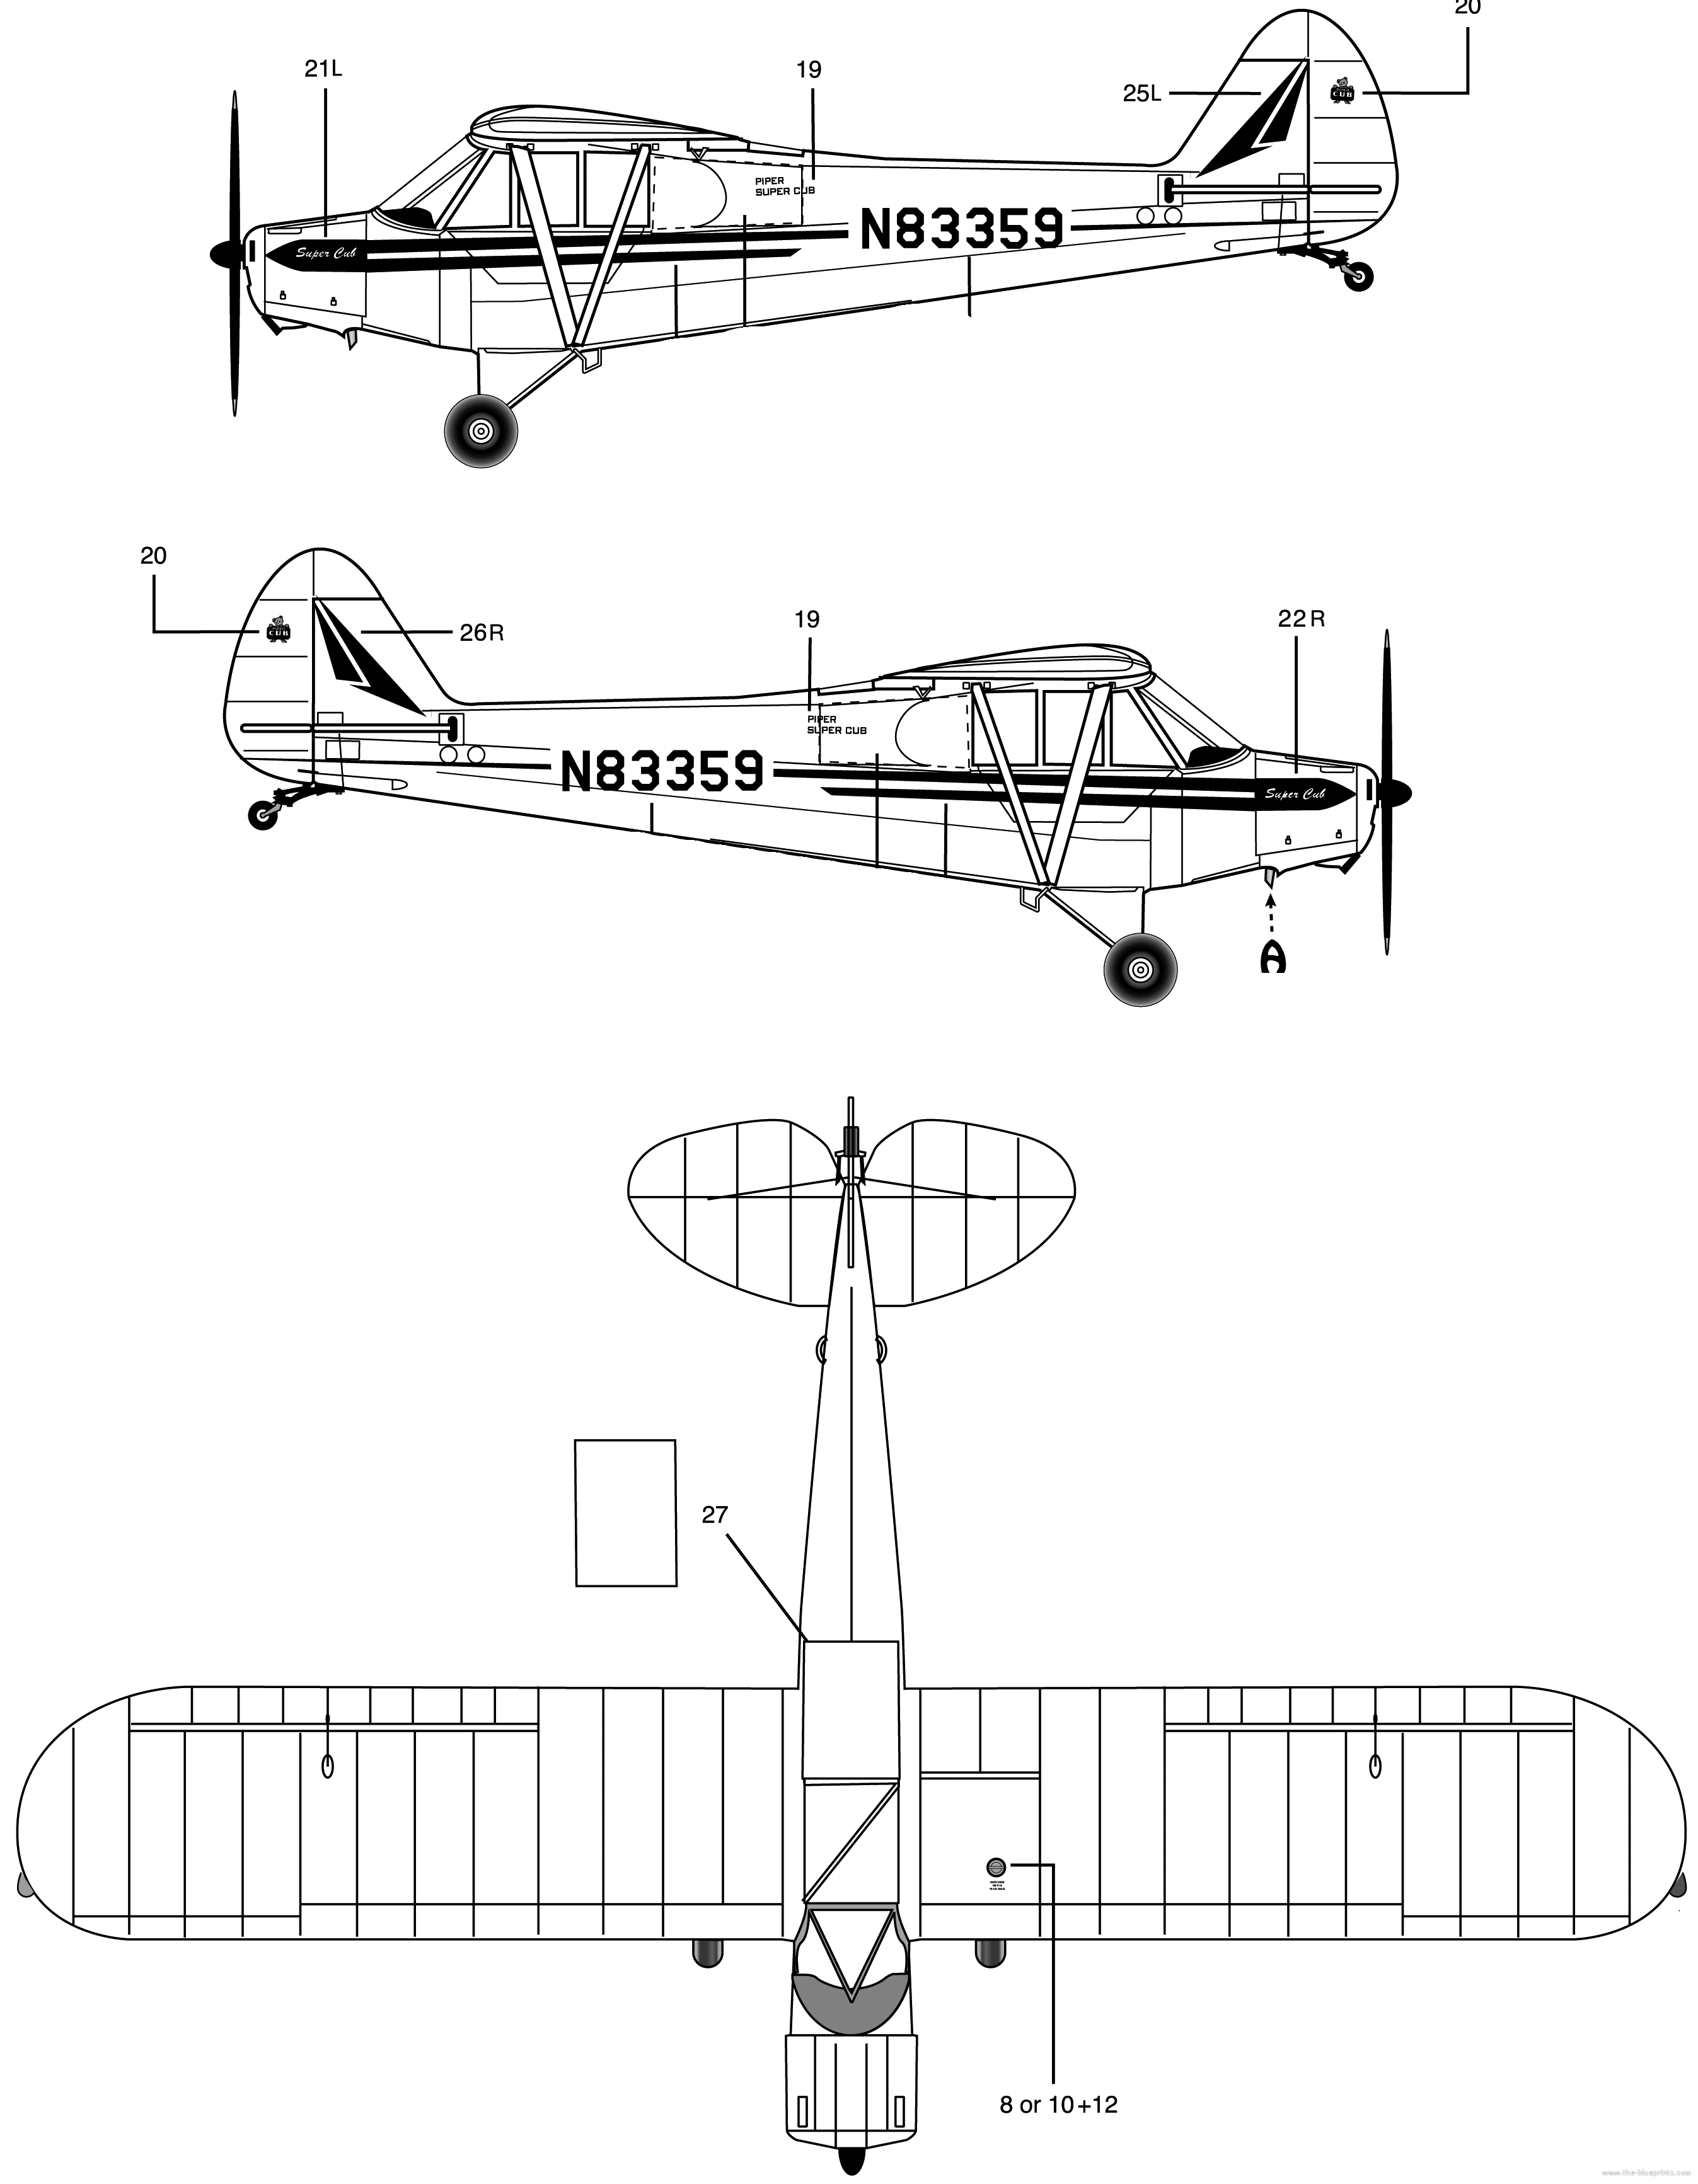 Piper pa 18 super cub blueprint download free blueprint for 3d piper pa 18 blueprint malvernweather Image collections